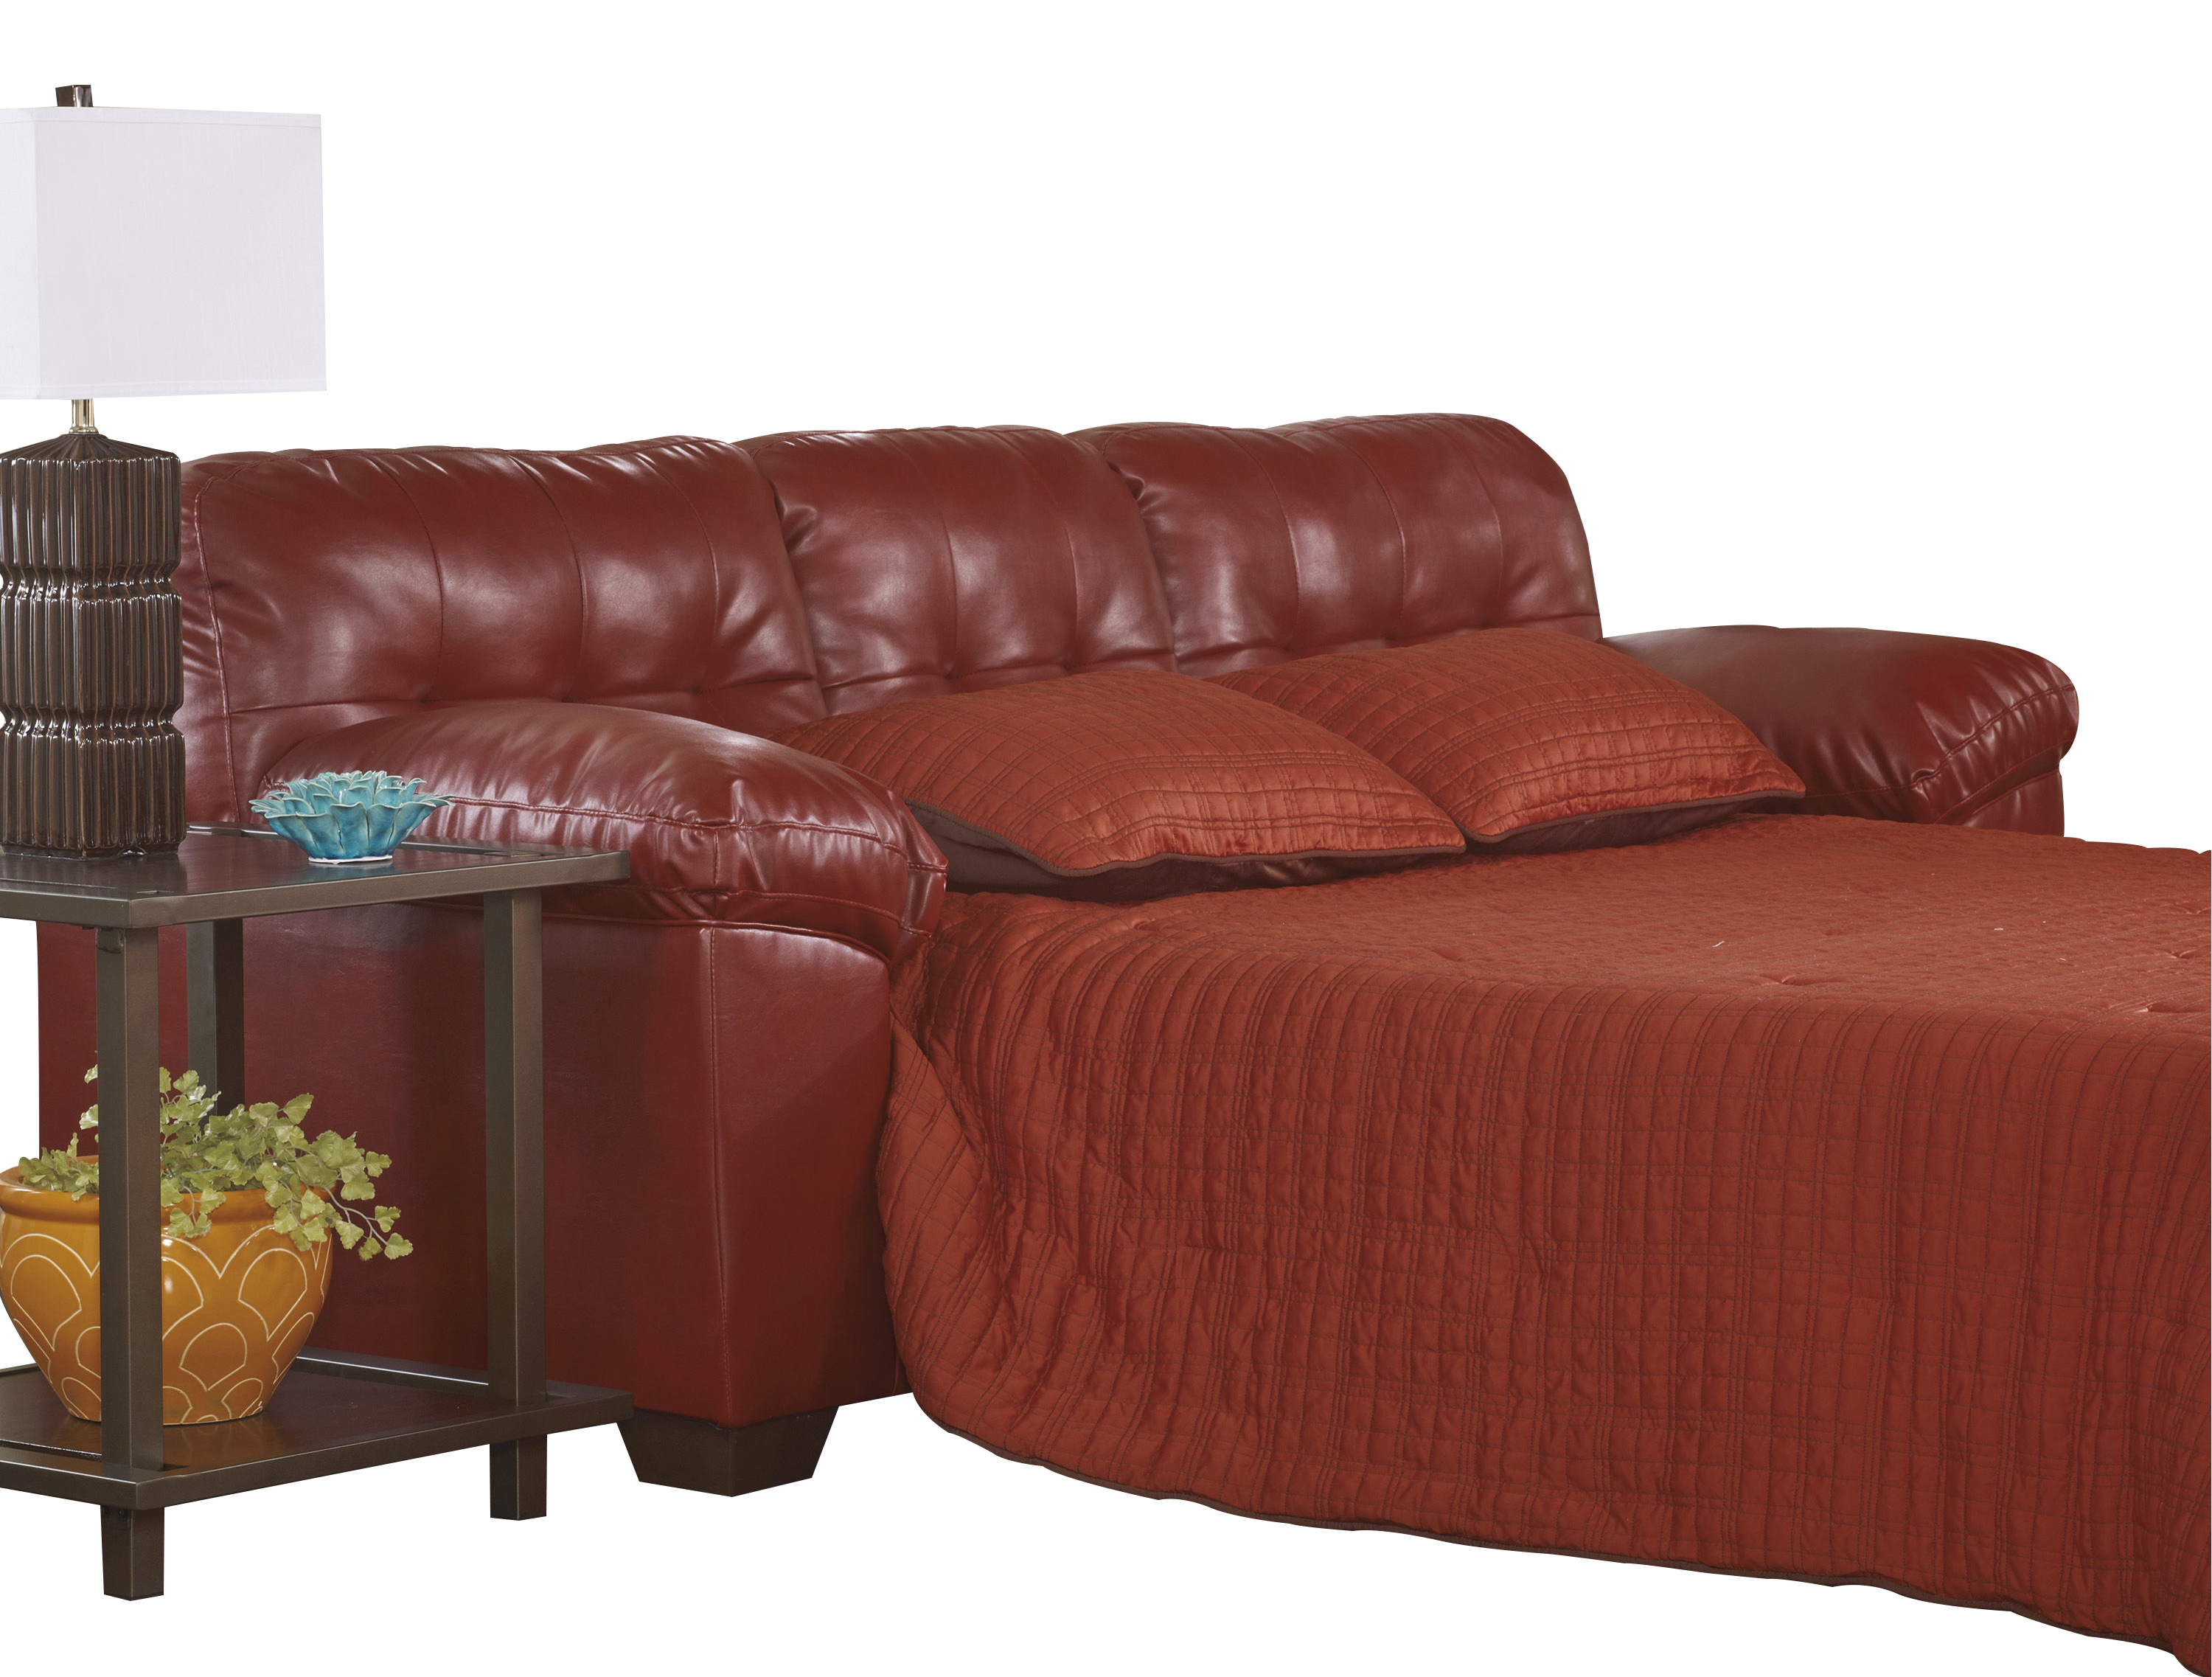 the best attitude 3f0e9 2be17 Ashley Furniture Alliston Durablend Salsa Queen Sofa Sleeper